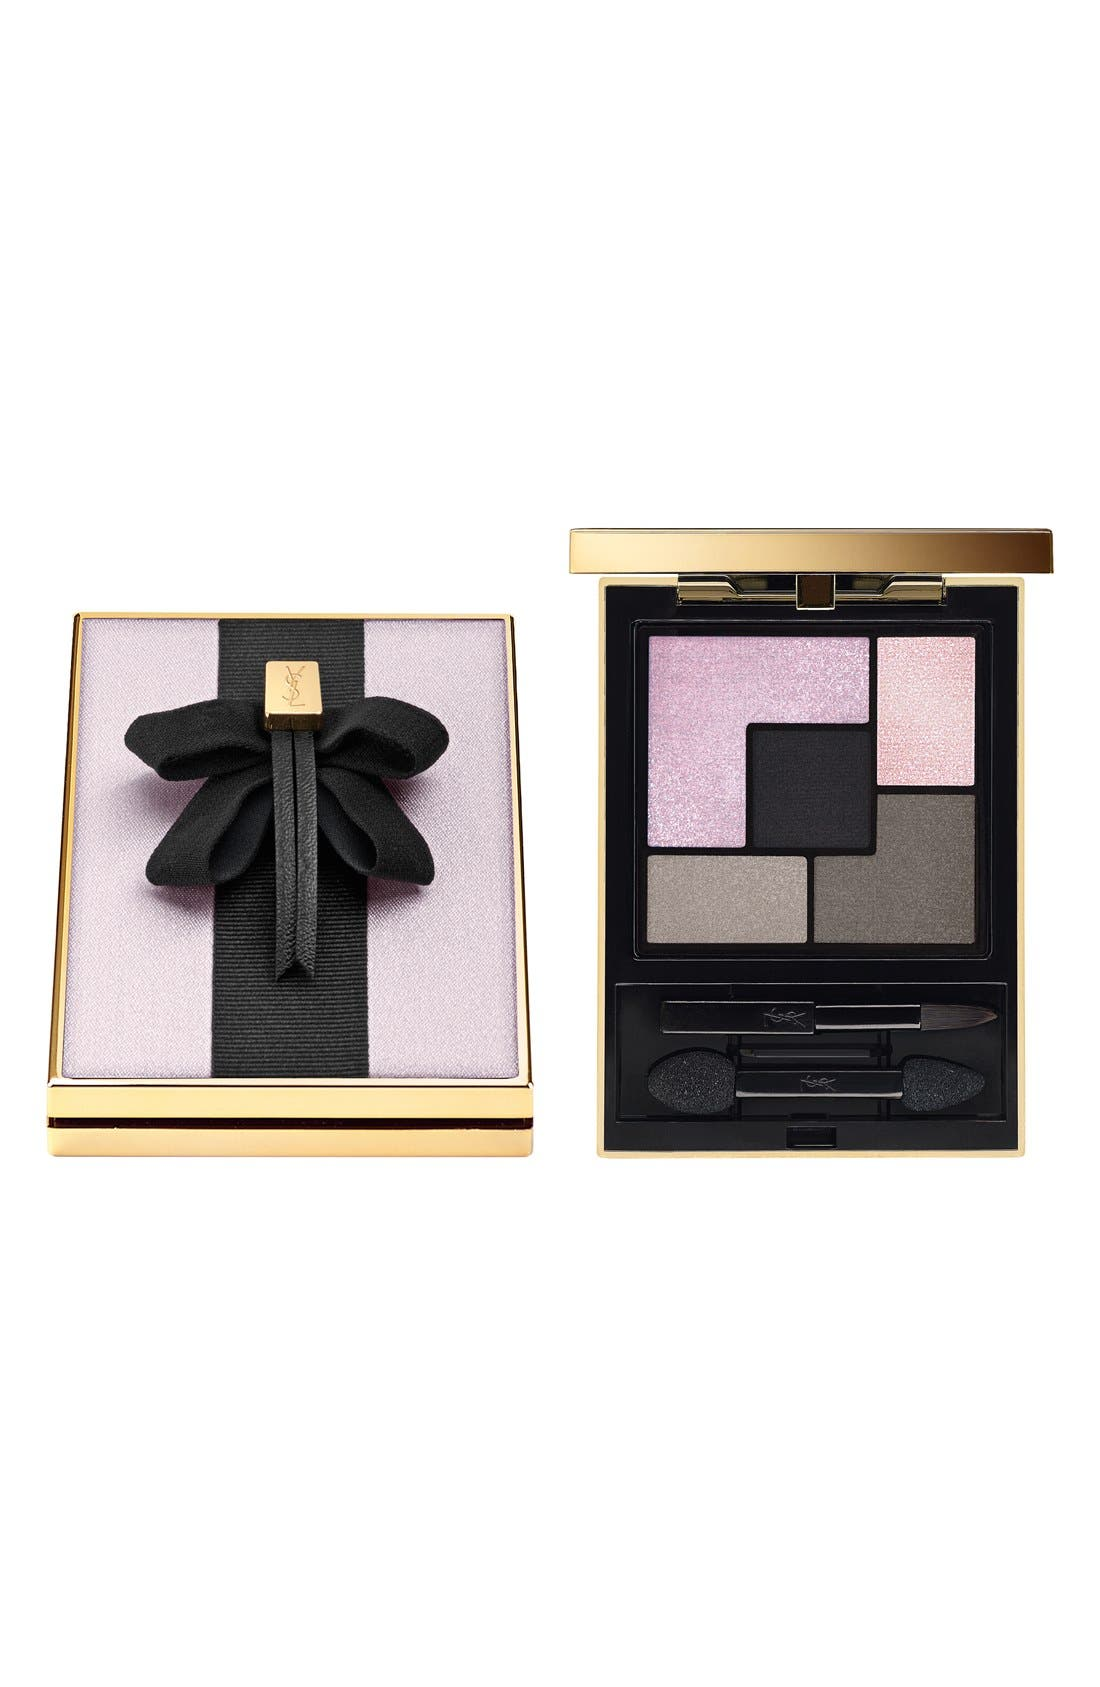 Yves Saint Laurent 'Mon Paris' Palette (Limited Edition) (Nordstrom Exclusive)